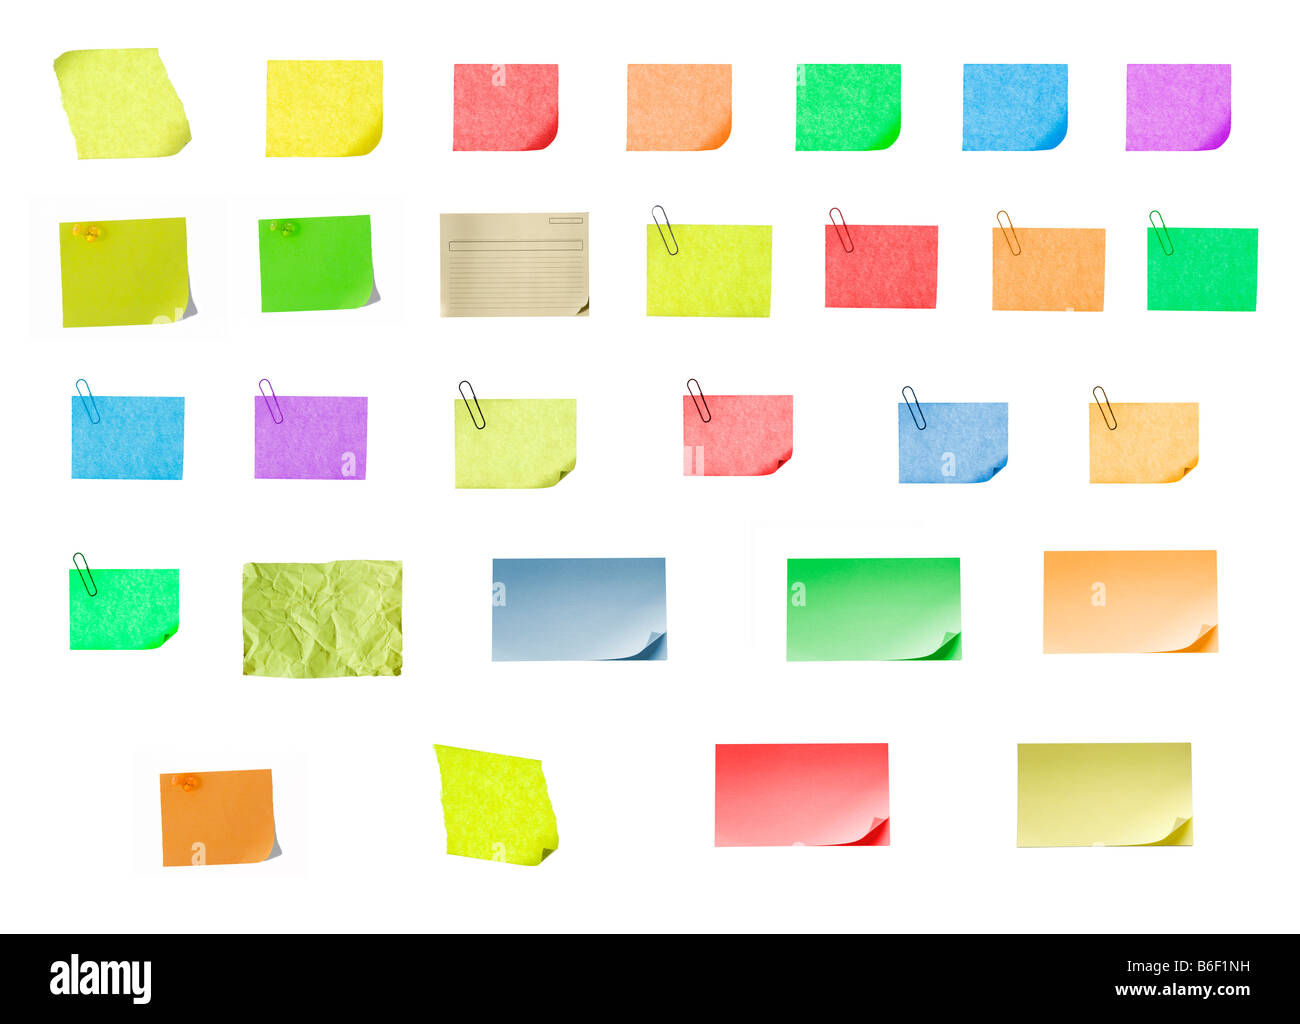 isolated blank color paper post it or postit where you can write or edit easily - Stock Image